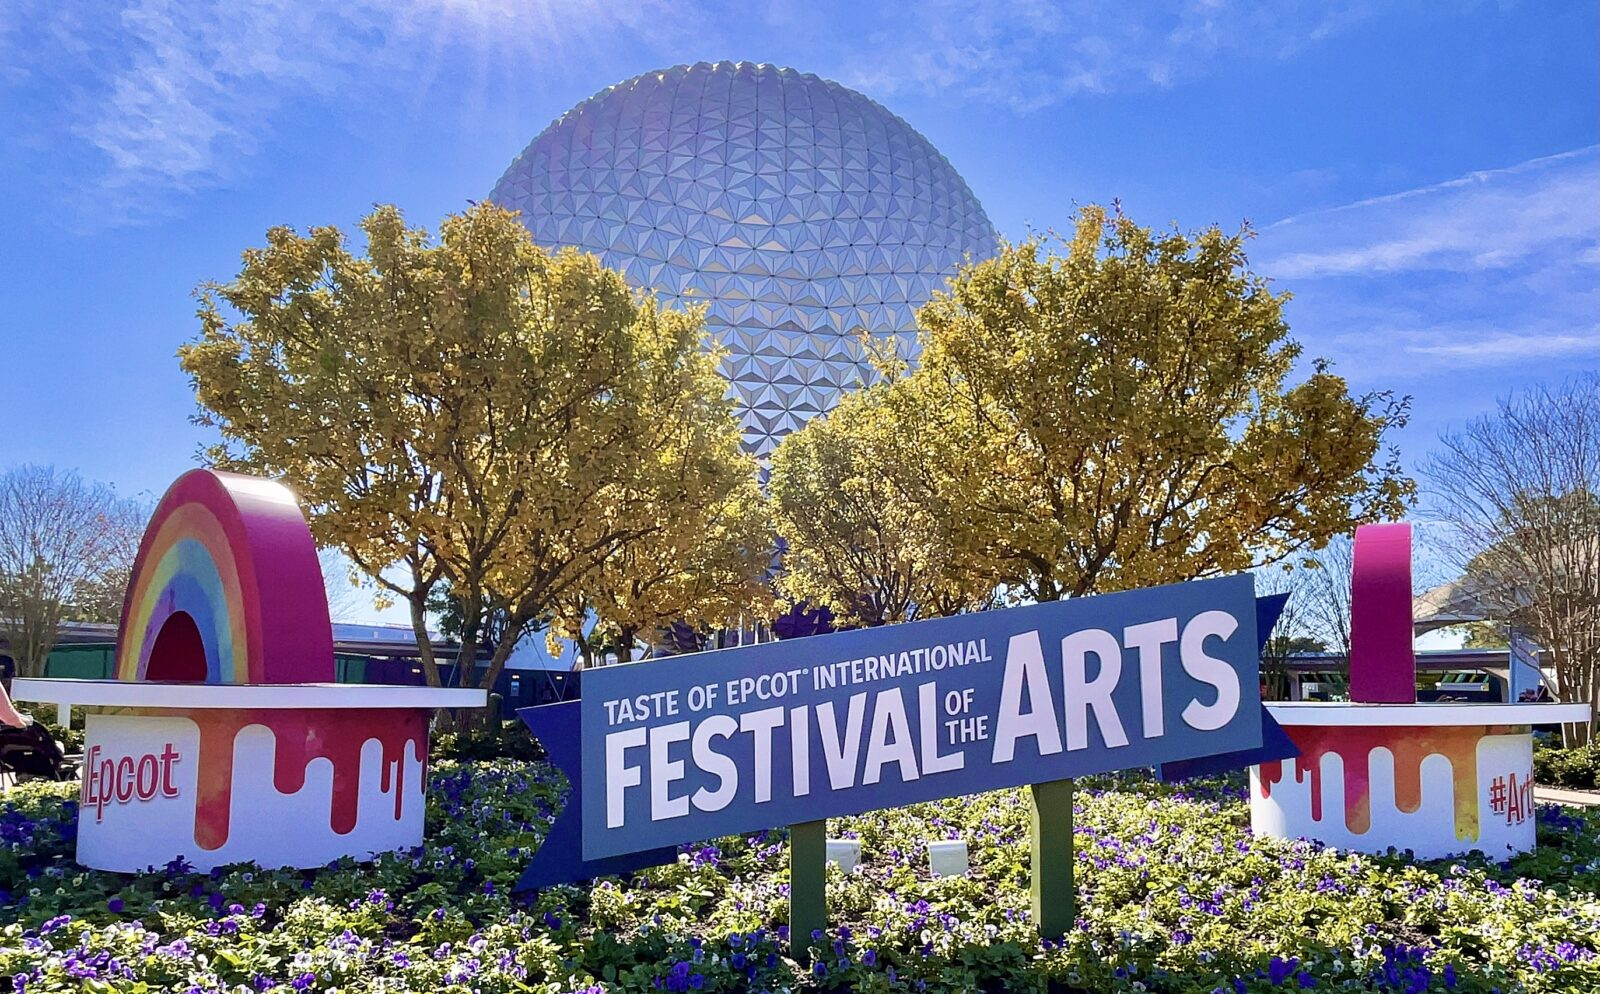 2021 Epcot Festival of the Arts Entrance